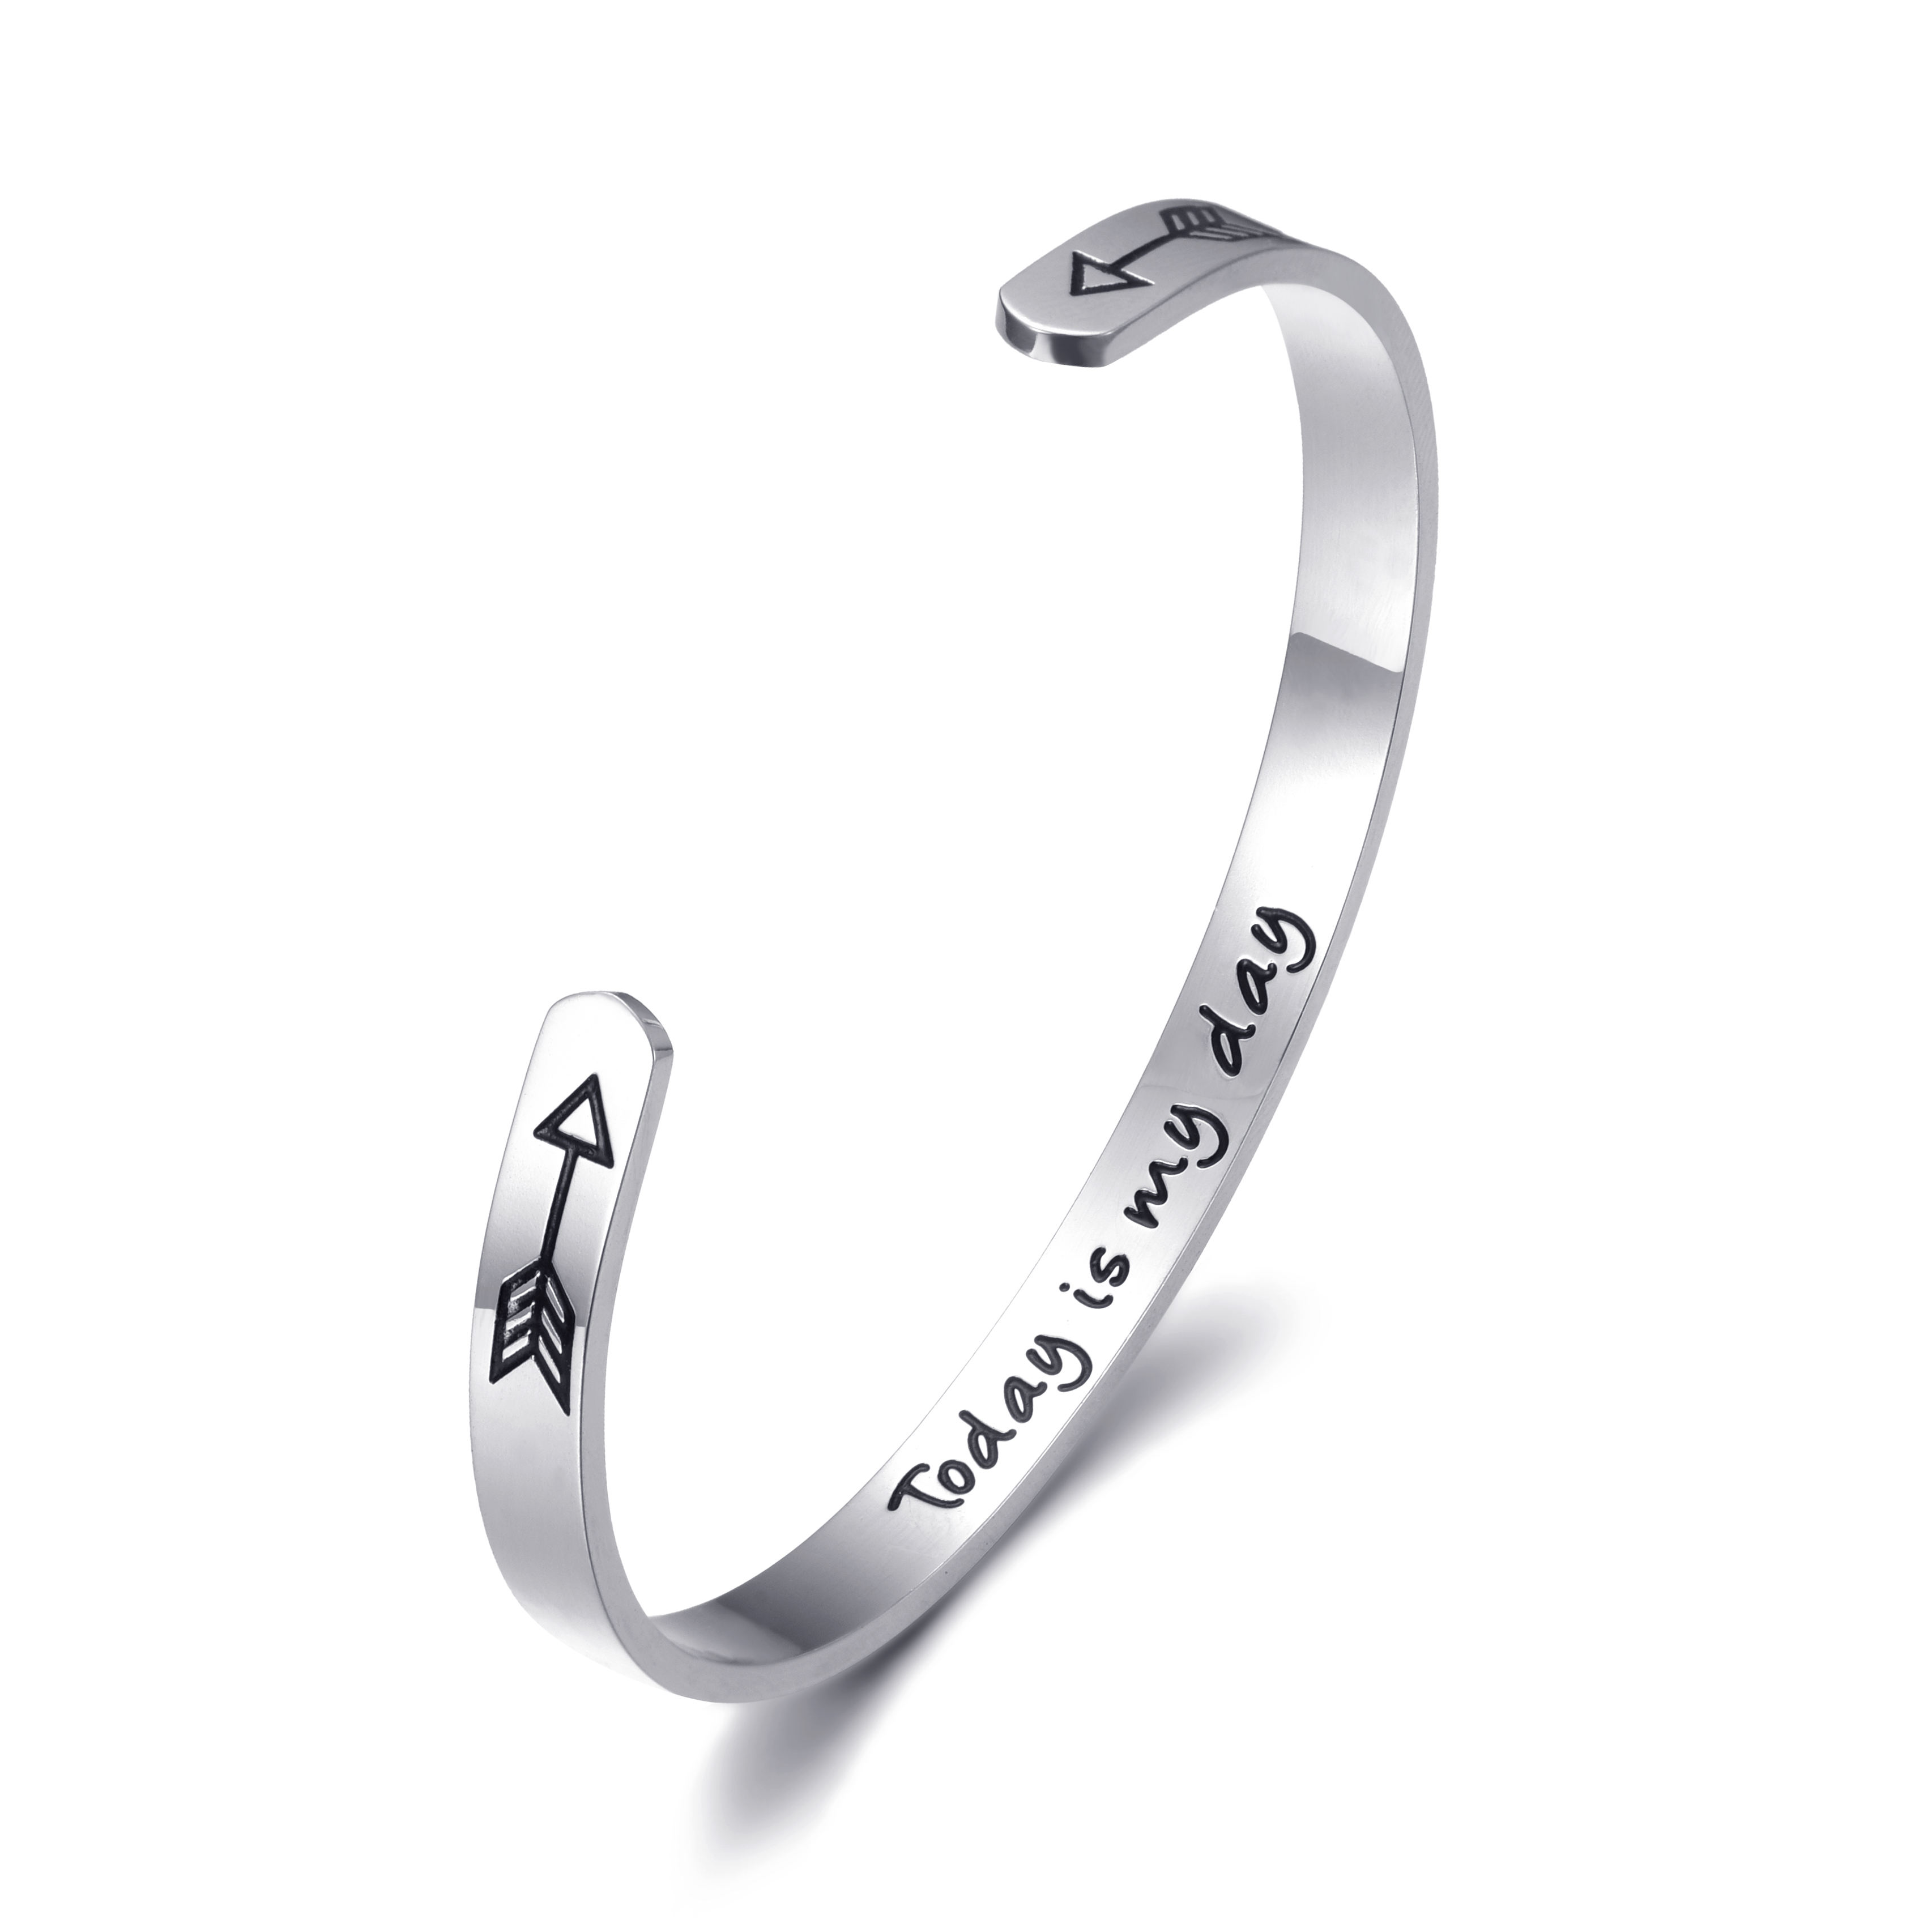 Best Friends Bracelet Stainless Steel Jewelry Cuff Bangles Bracelets Friendship Mother's Day Gifts